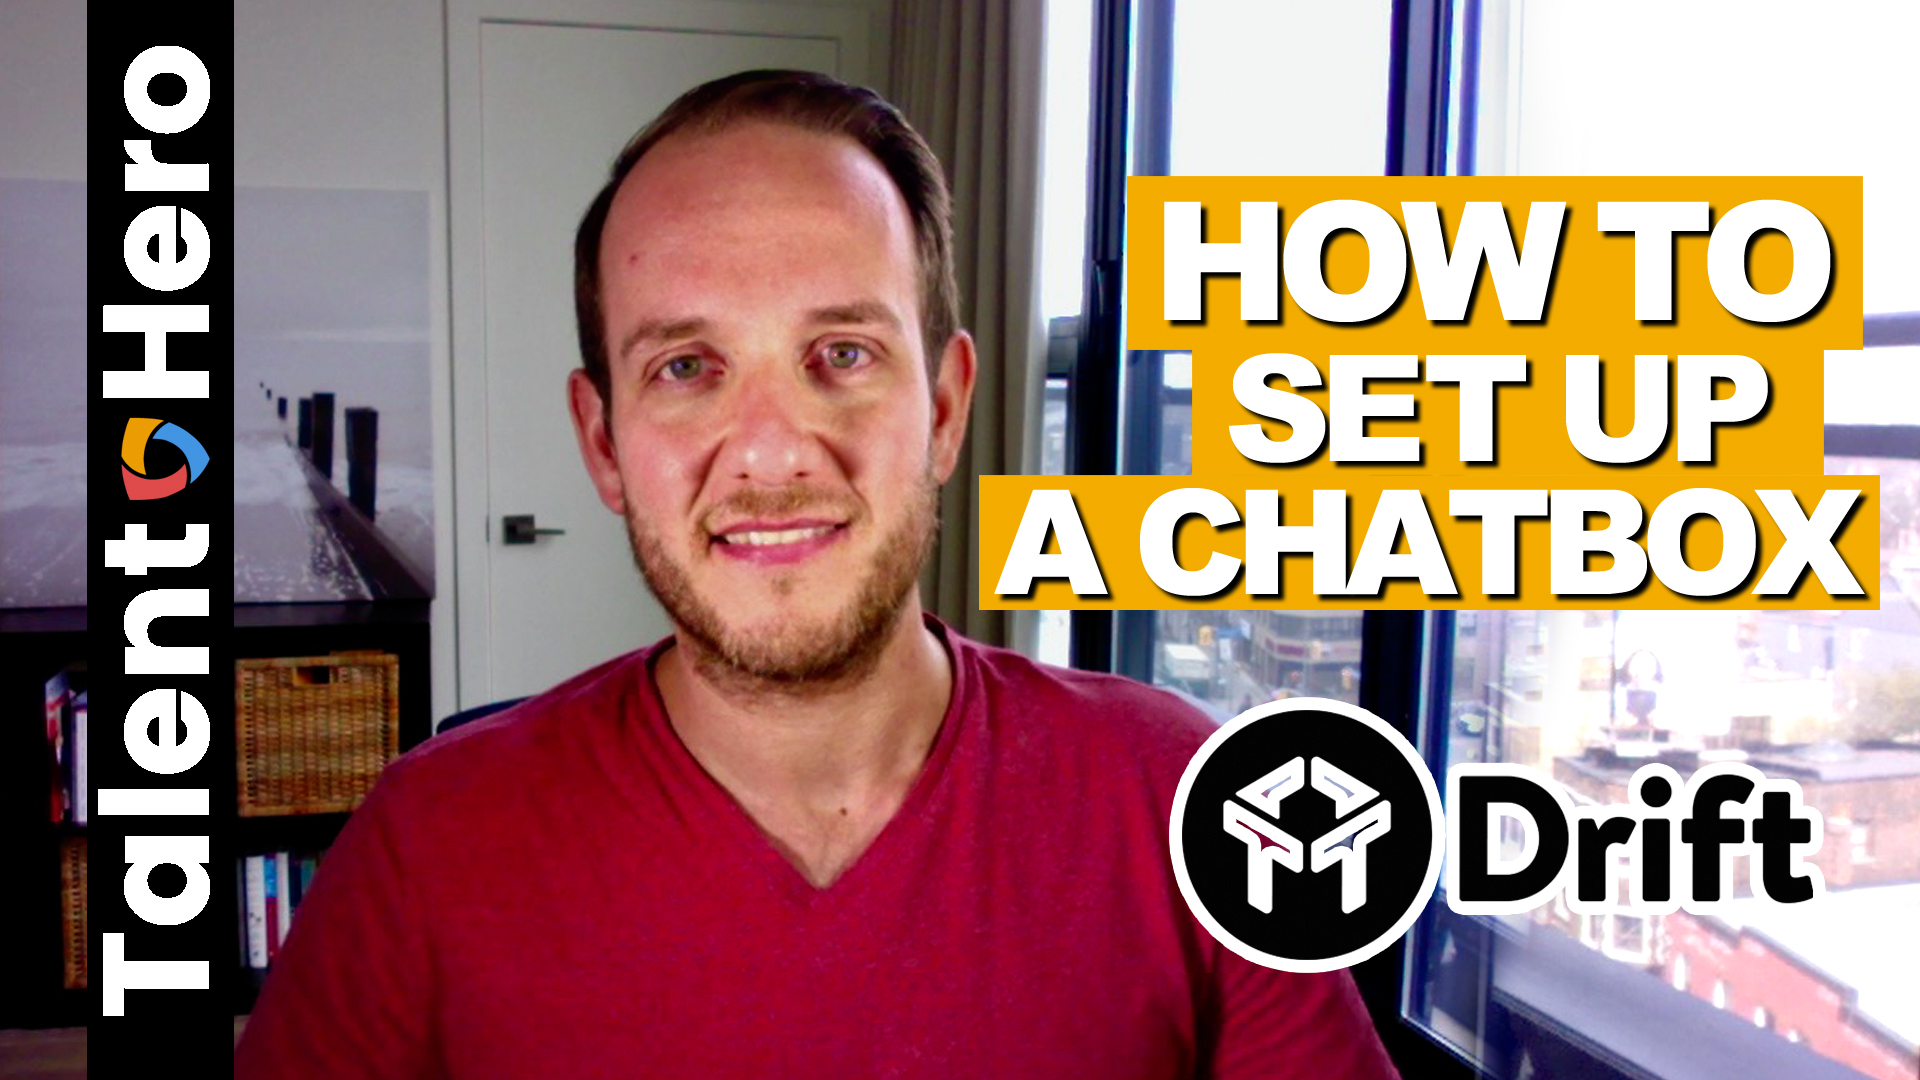 How to Set Up A Chatbox Thumbnail